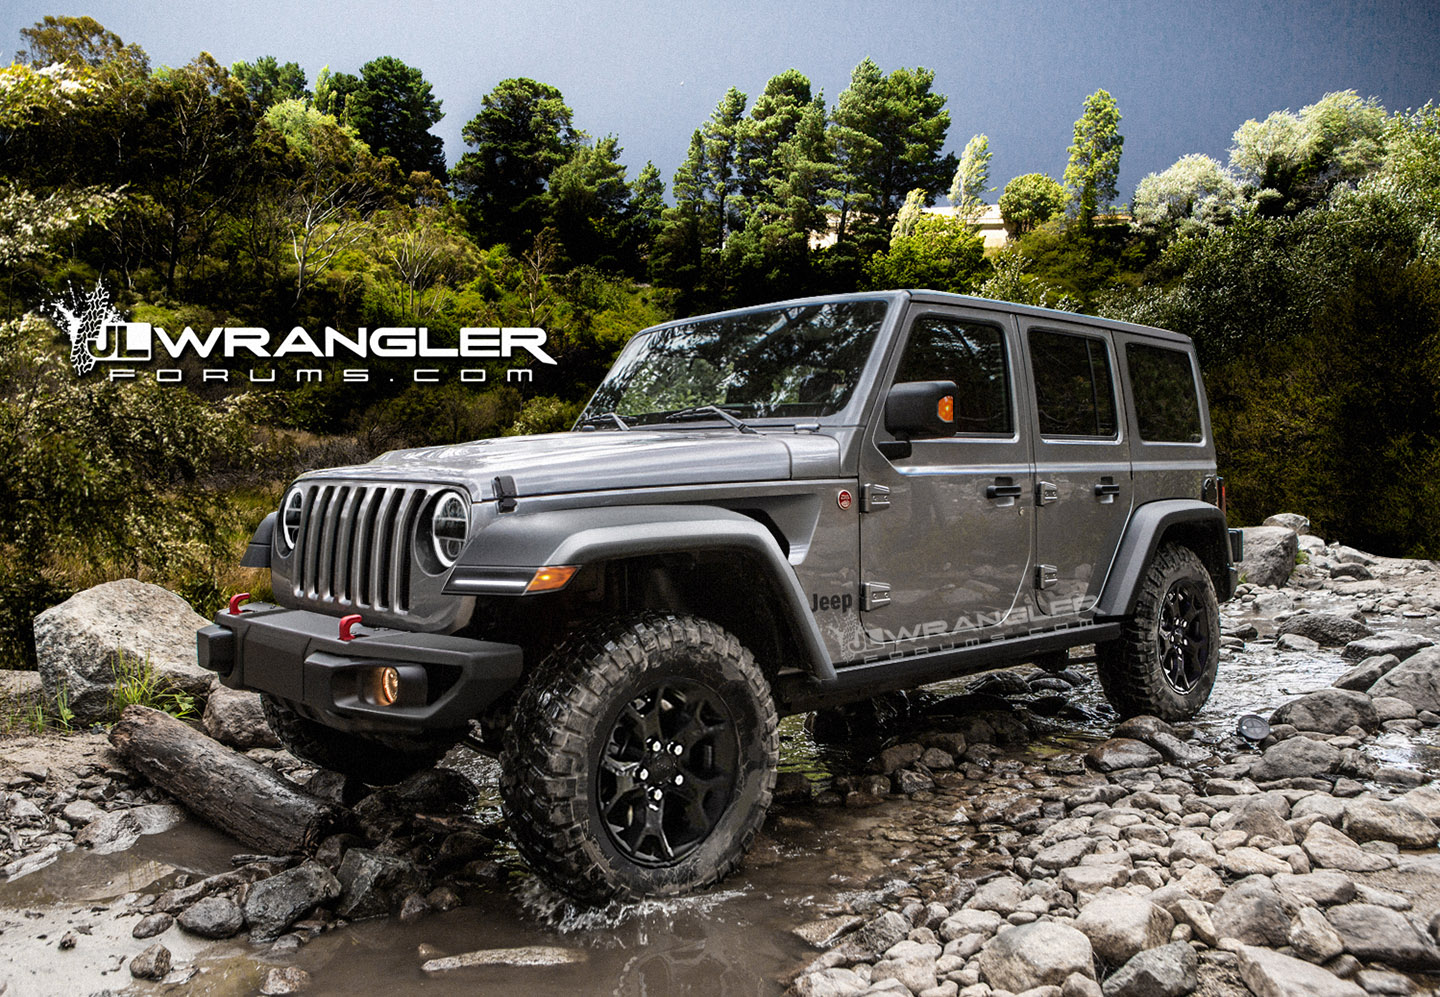 High Jeep Wrangler >> Renderings: New Jeep Wrangler JLU Brought to Life | 2018+ Jeep Wrangler Forums (JL / JT ...